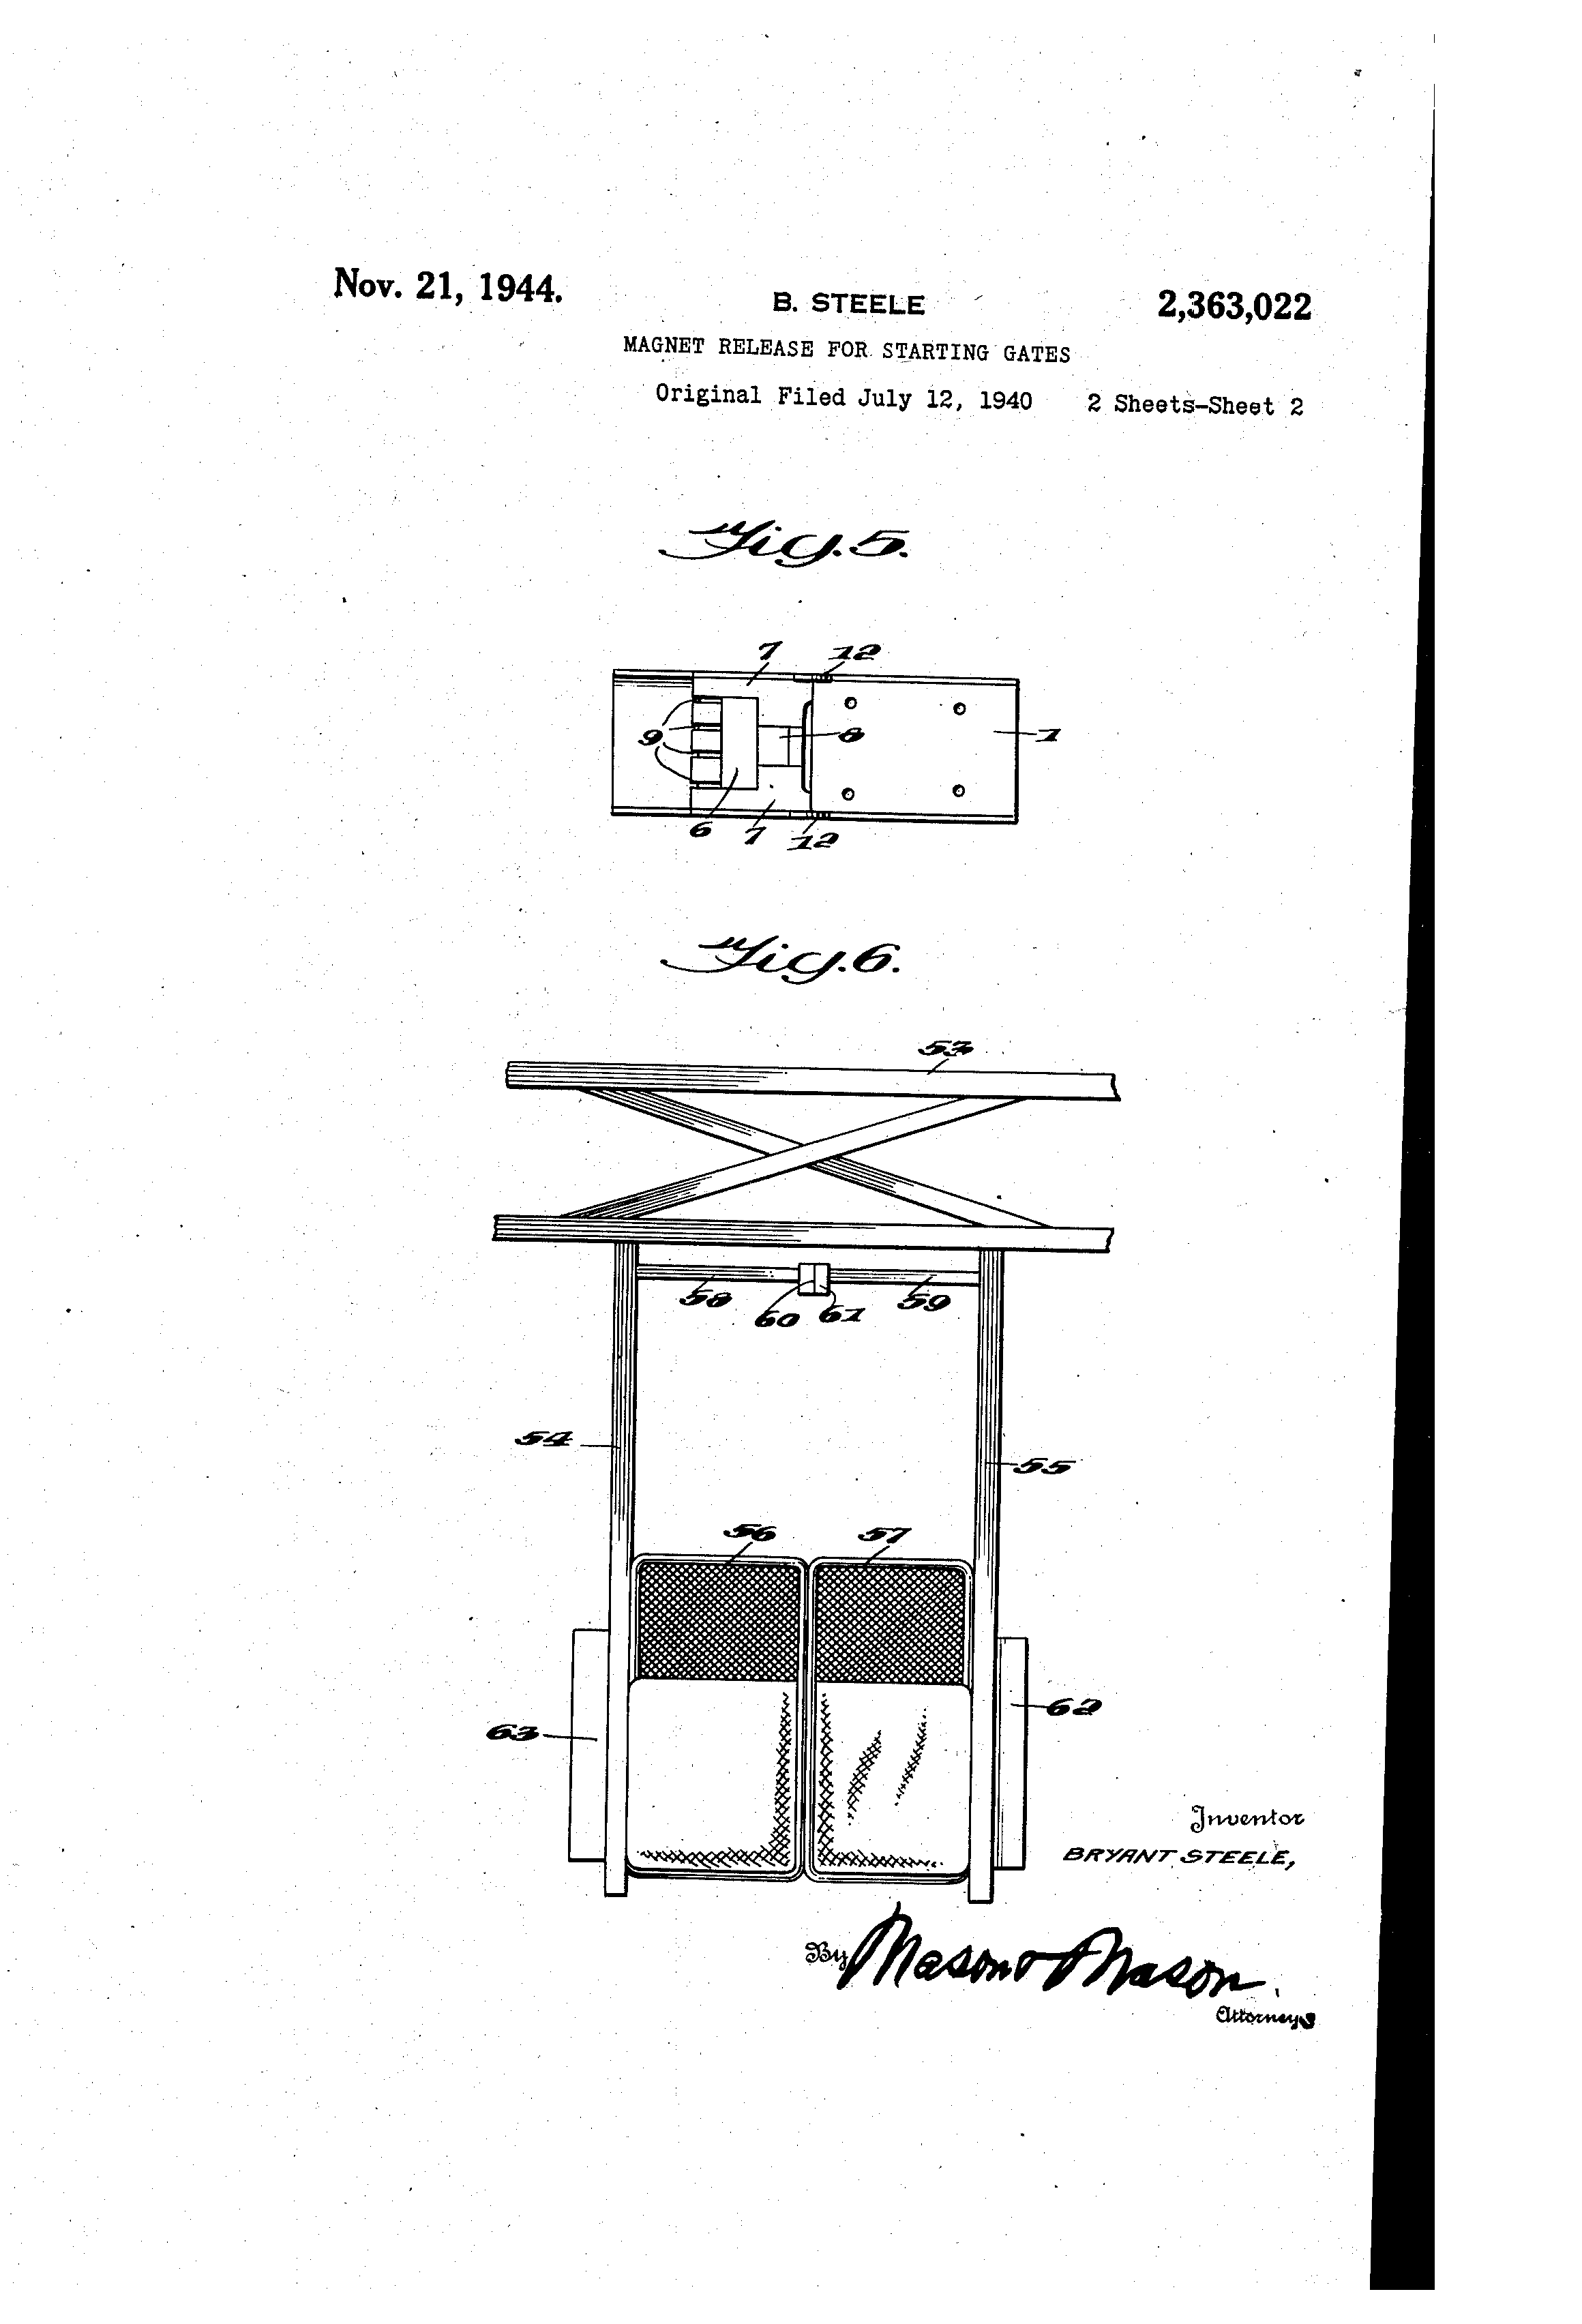 Patent US2363022 - Magnet release for starting gates